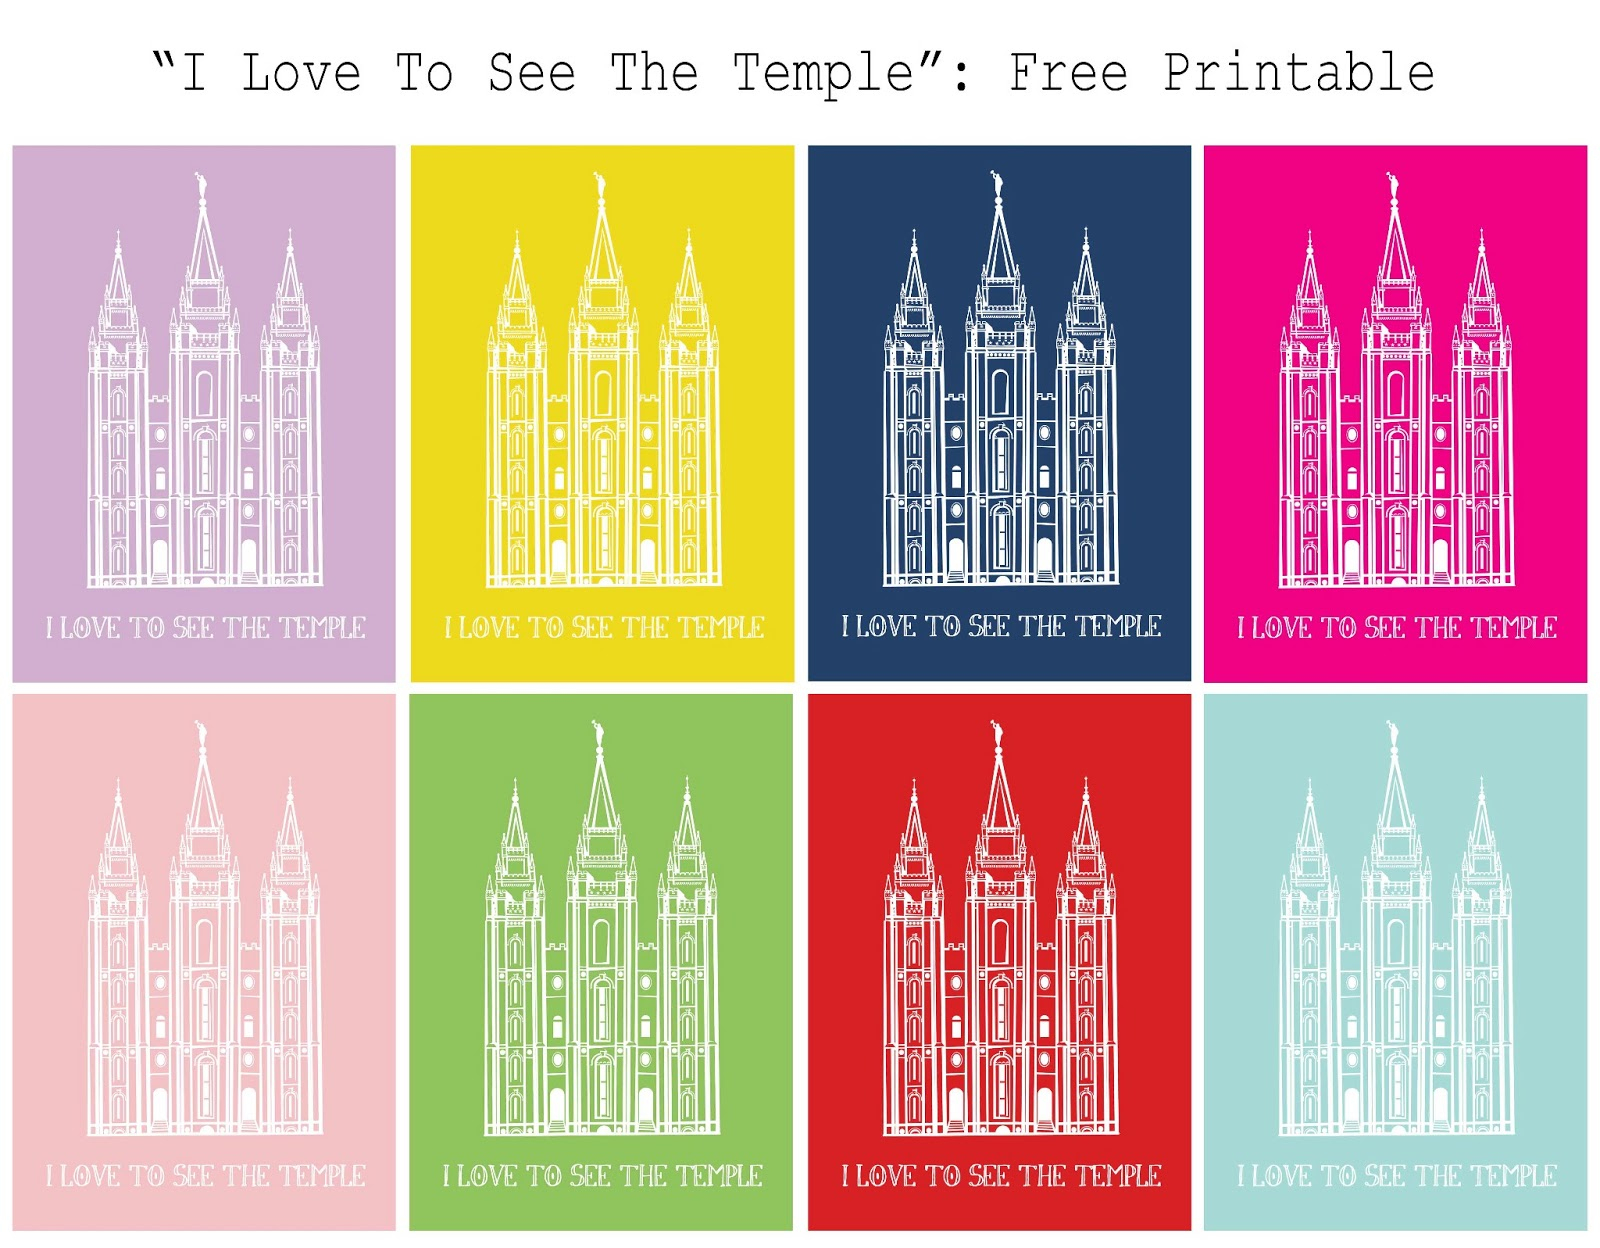 The Caldwells: Free Printable: I Love To See The Temple - Free Printable Sud